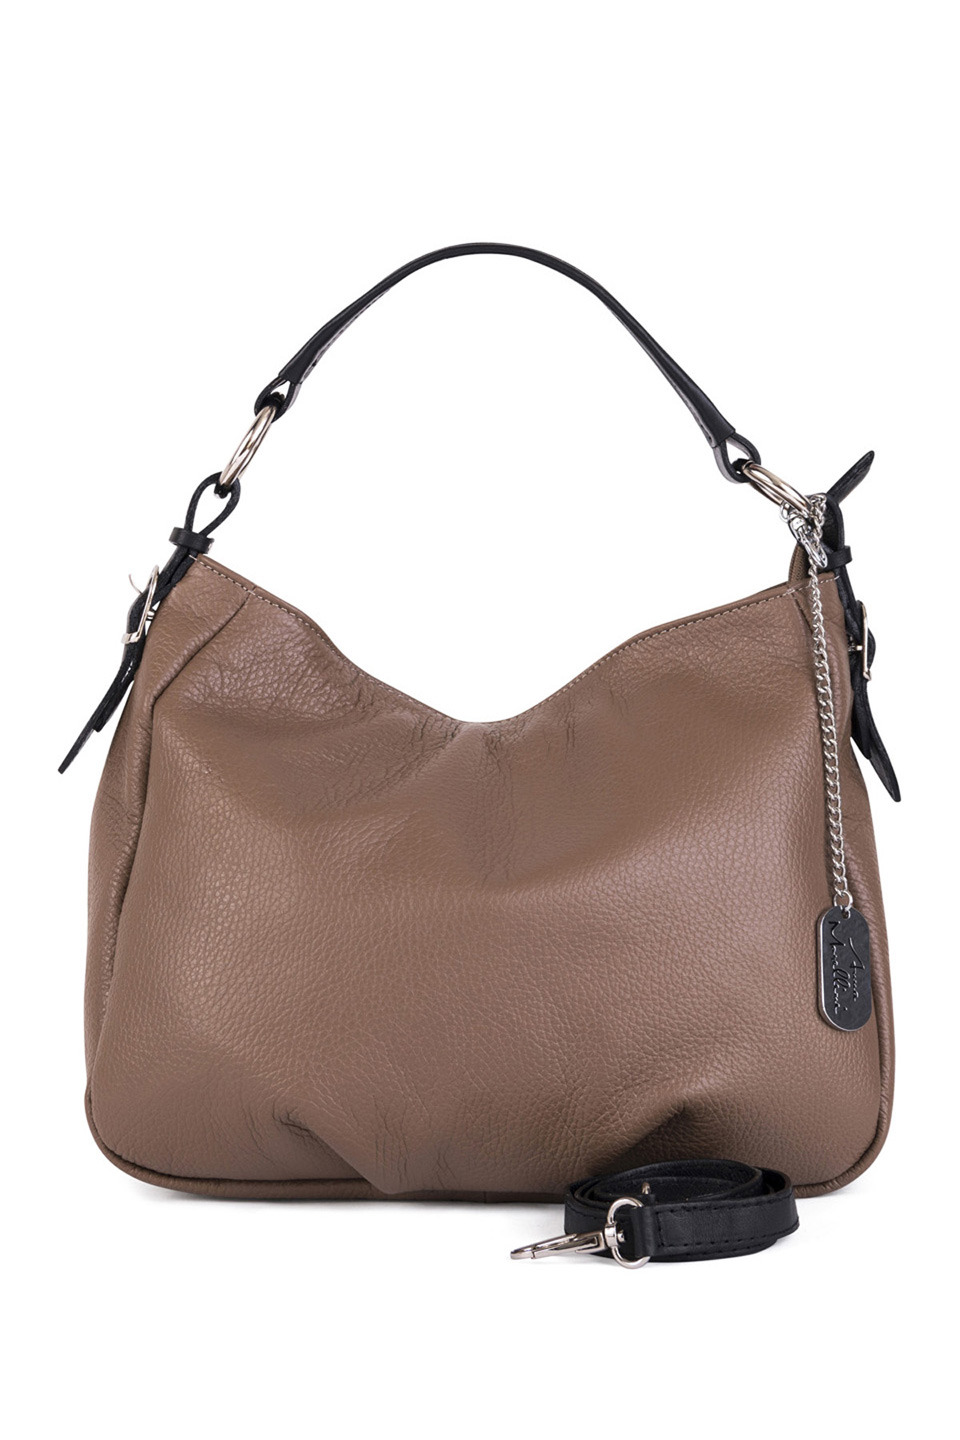 KATHY HANDBAG IN DARK TAUPE